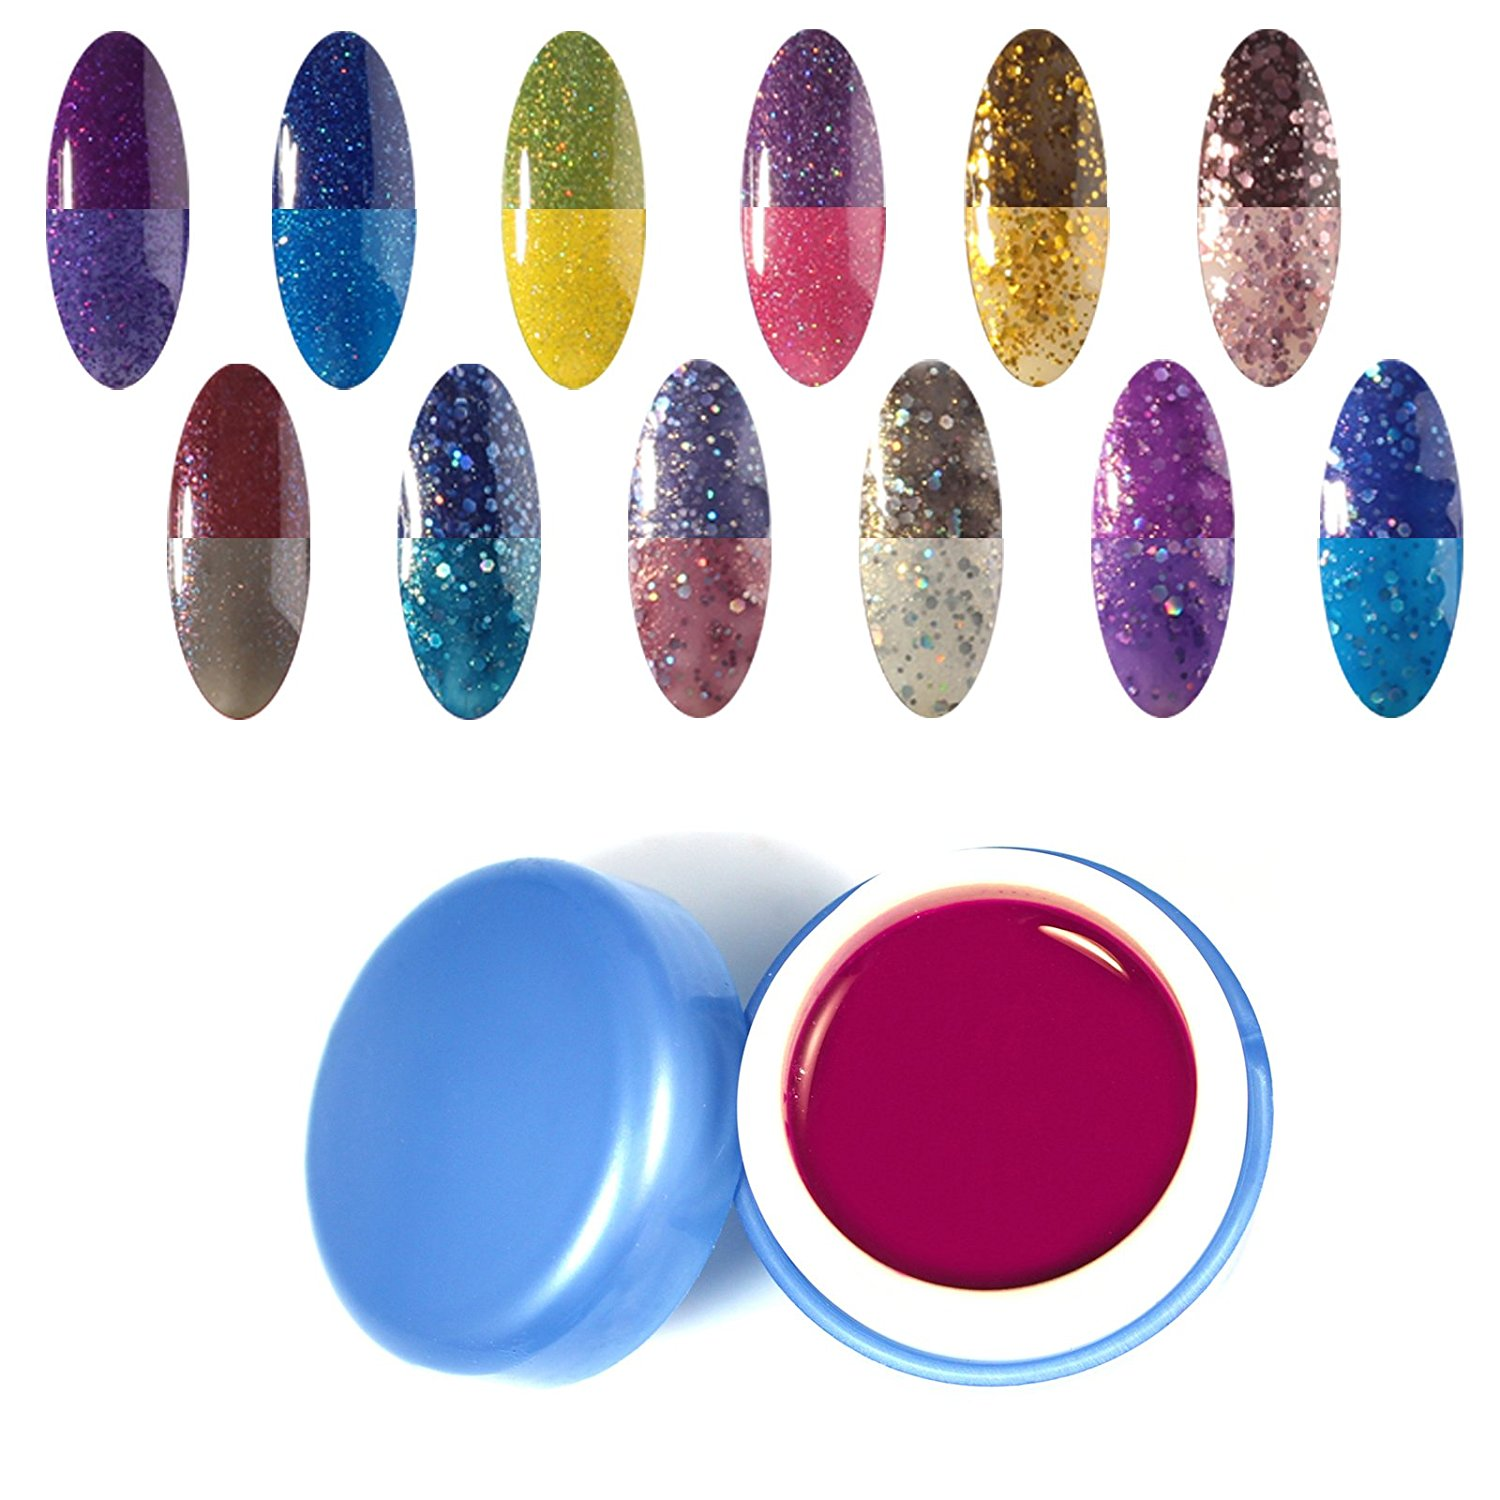 Perfect Summer New Best 12pcs 6ml Chameleon Temperature Change Colors Nail Lacquers Varnish Soak Off Led UV Gel Polish Mood Changing Salon Starter Kits #37